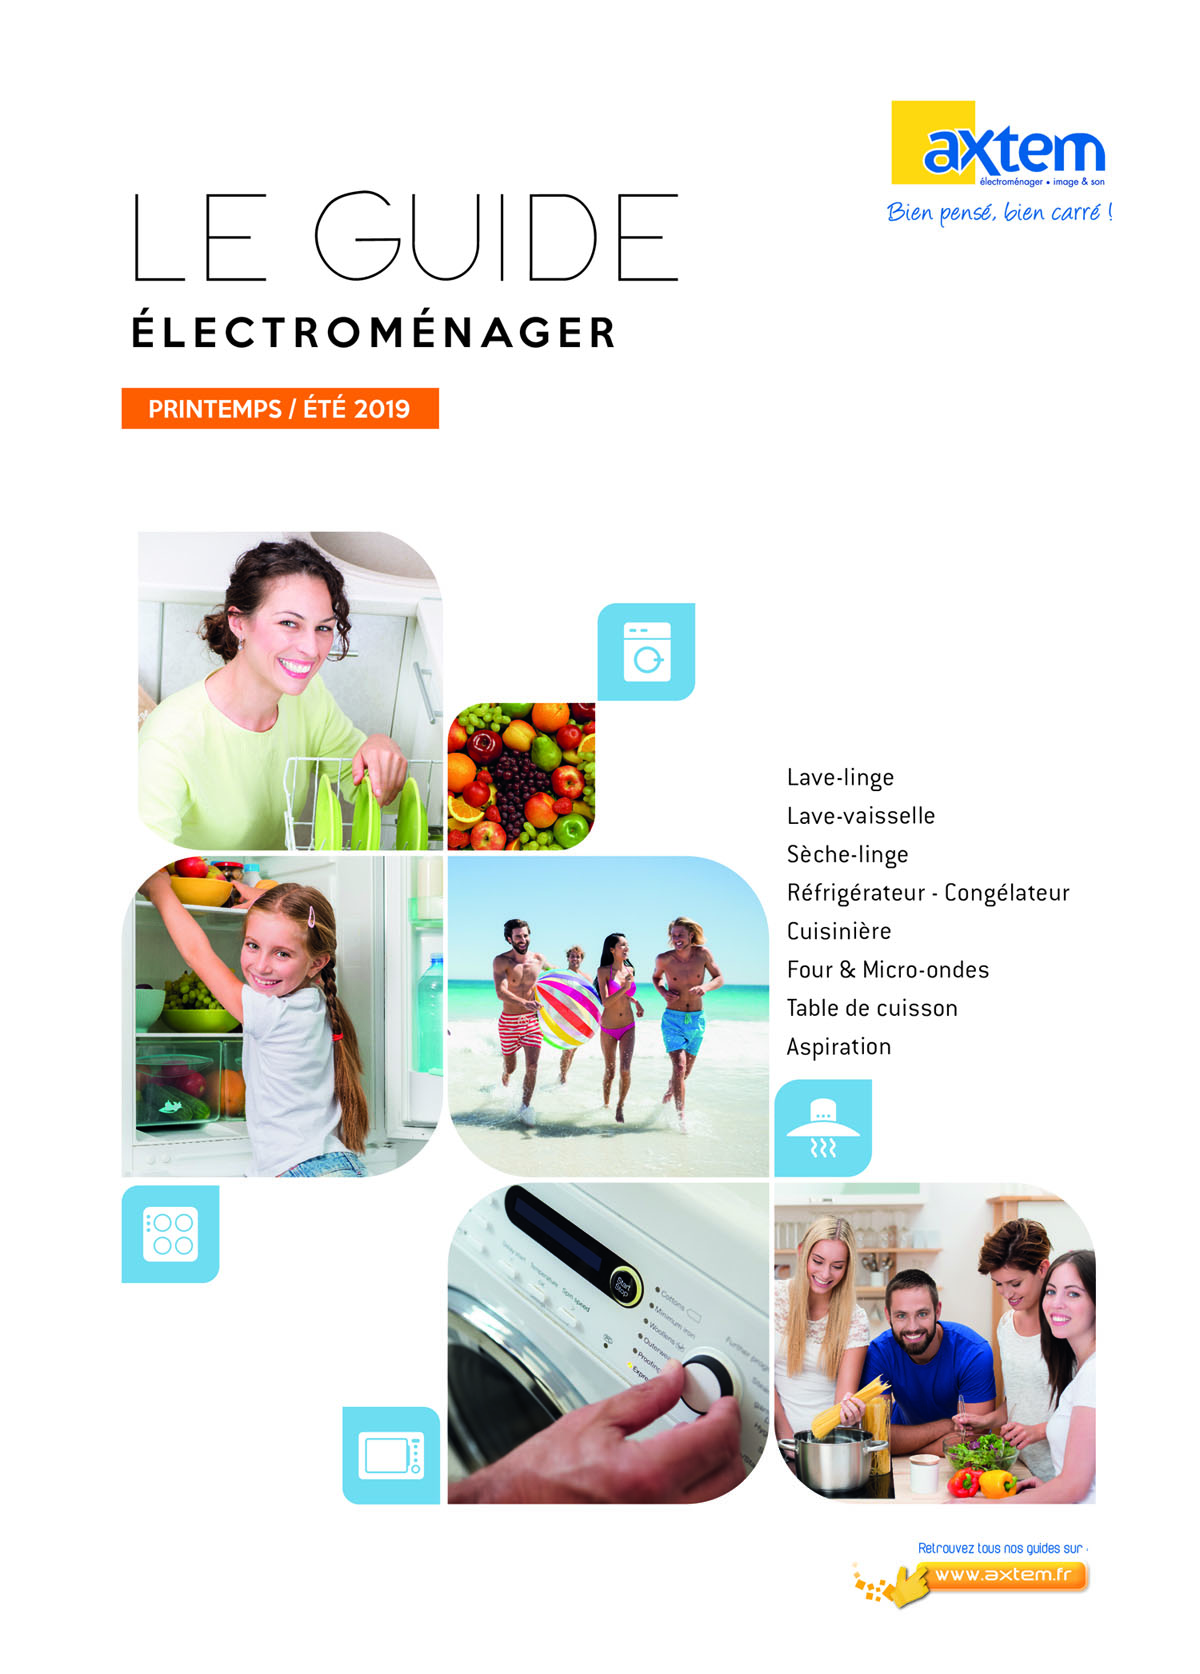 Catalogue Electromenager Cataloques Axtem